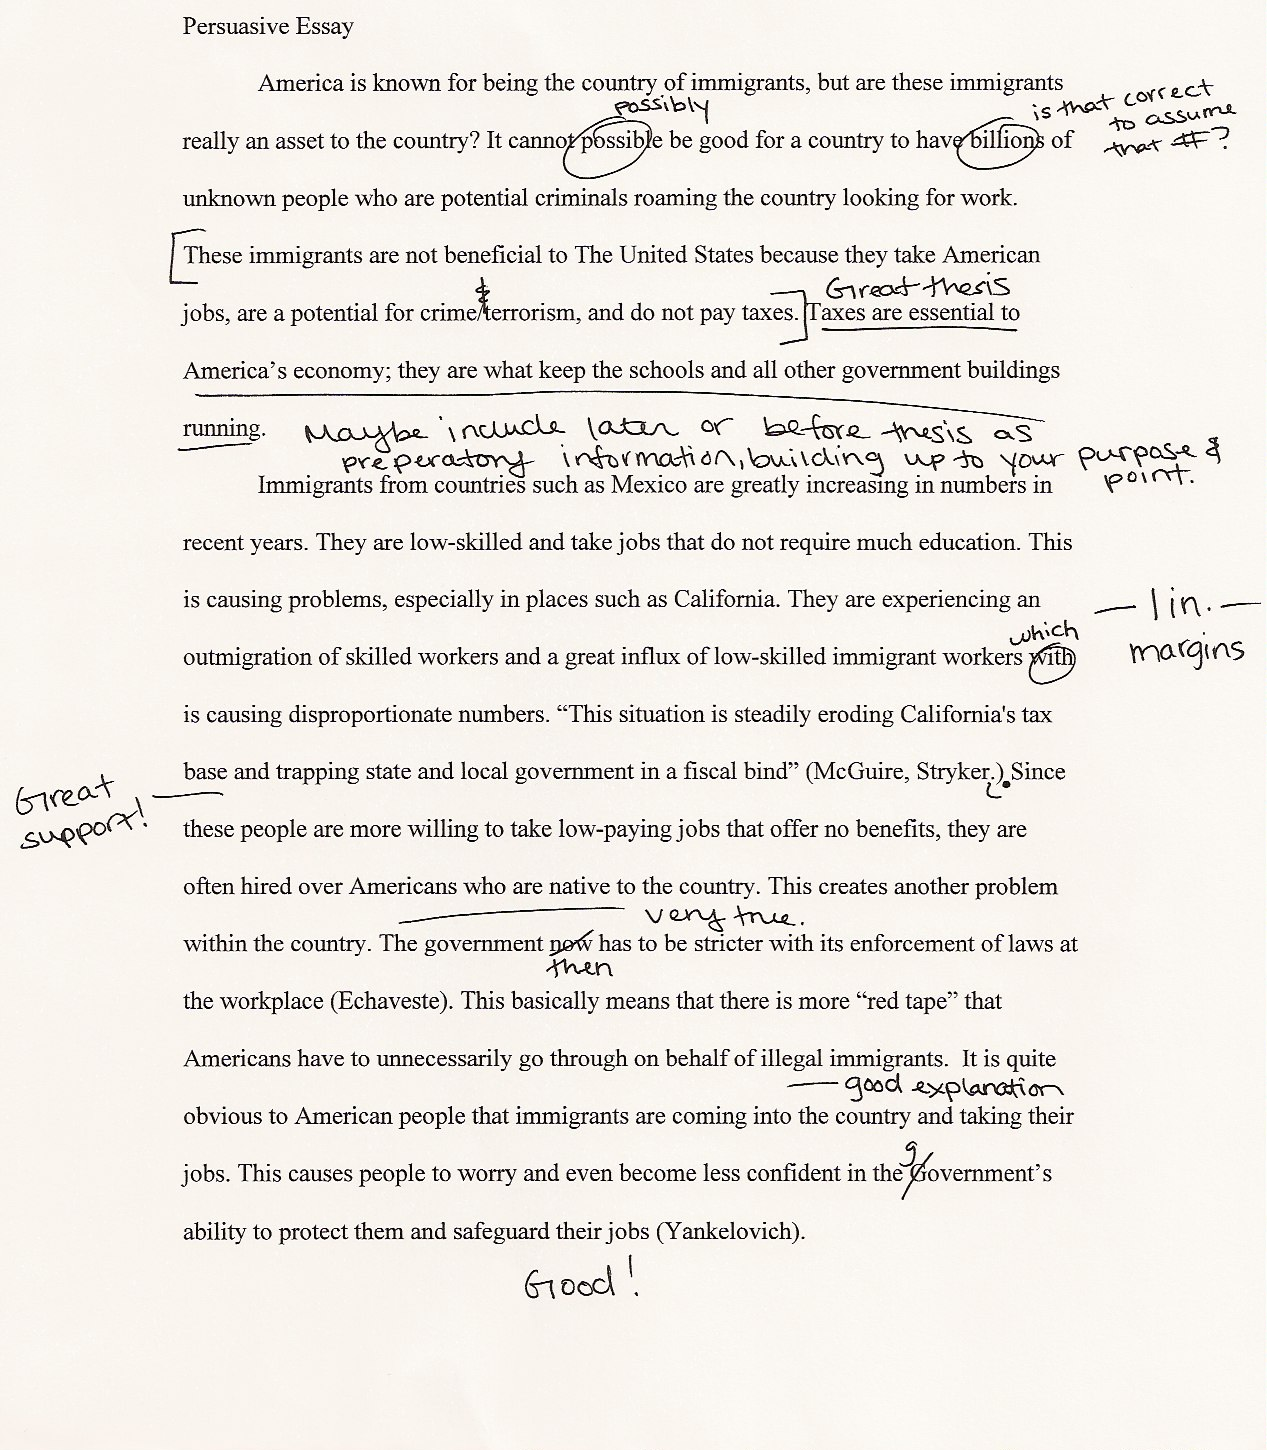 persuasive writing essays persuasive writing essays tk